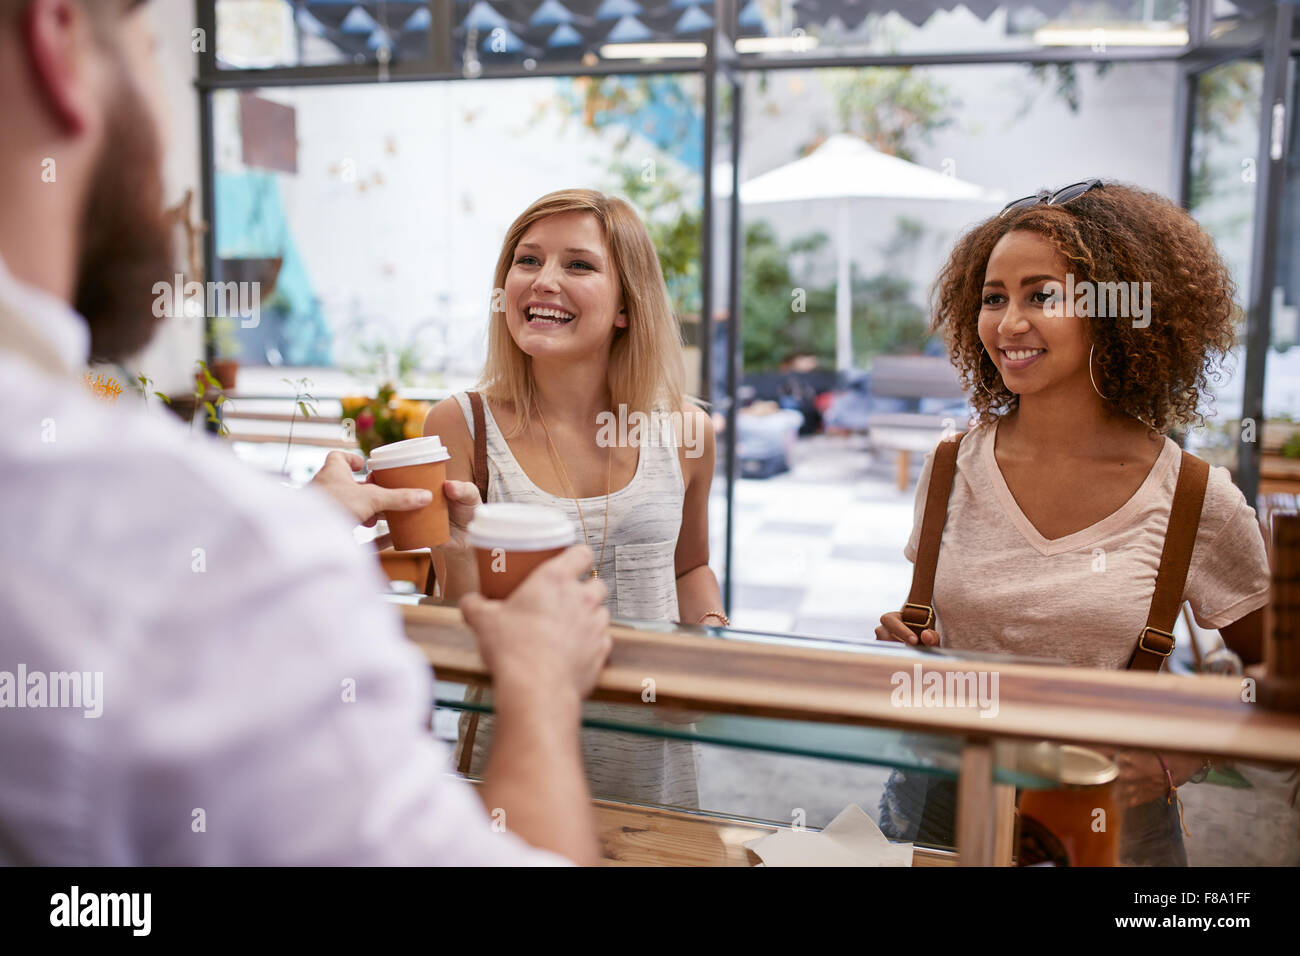 Indoor shot of two young women friends smiles as they receive their hot drinks from the cafe counter. Happy young - Stock Image